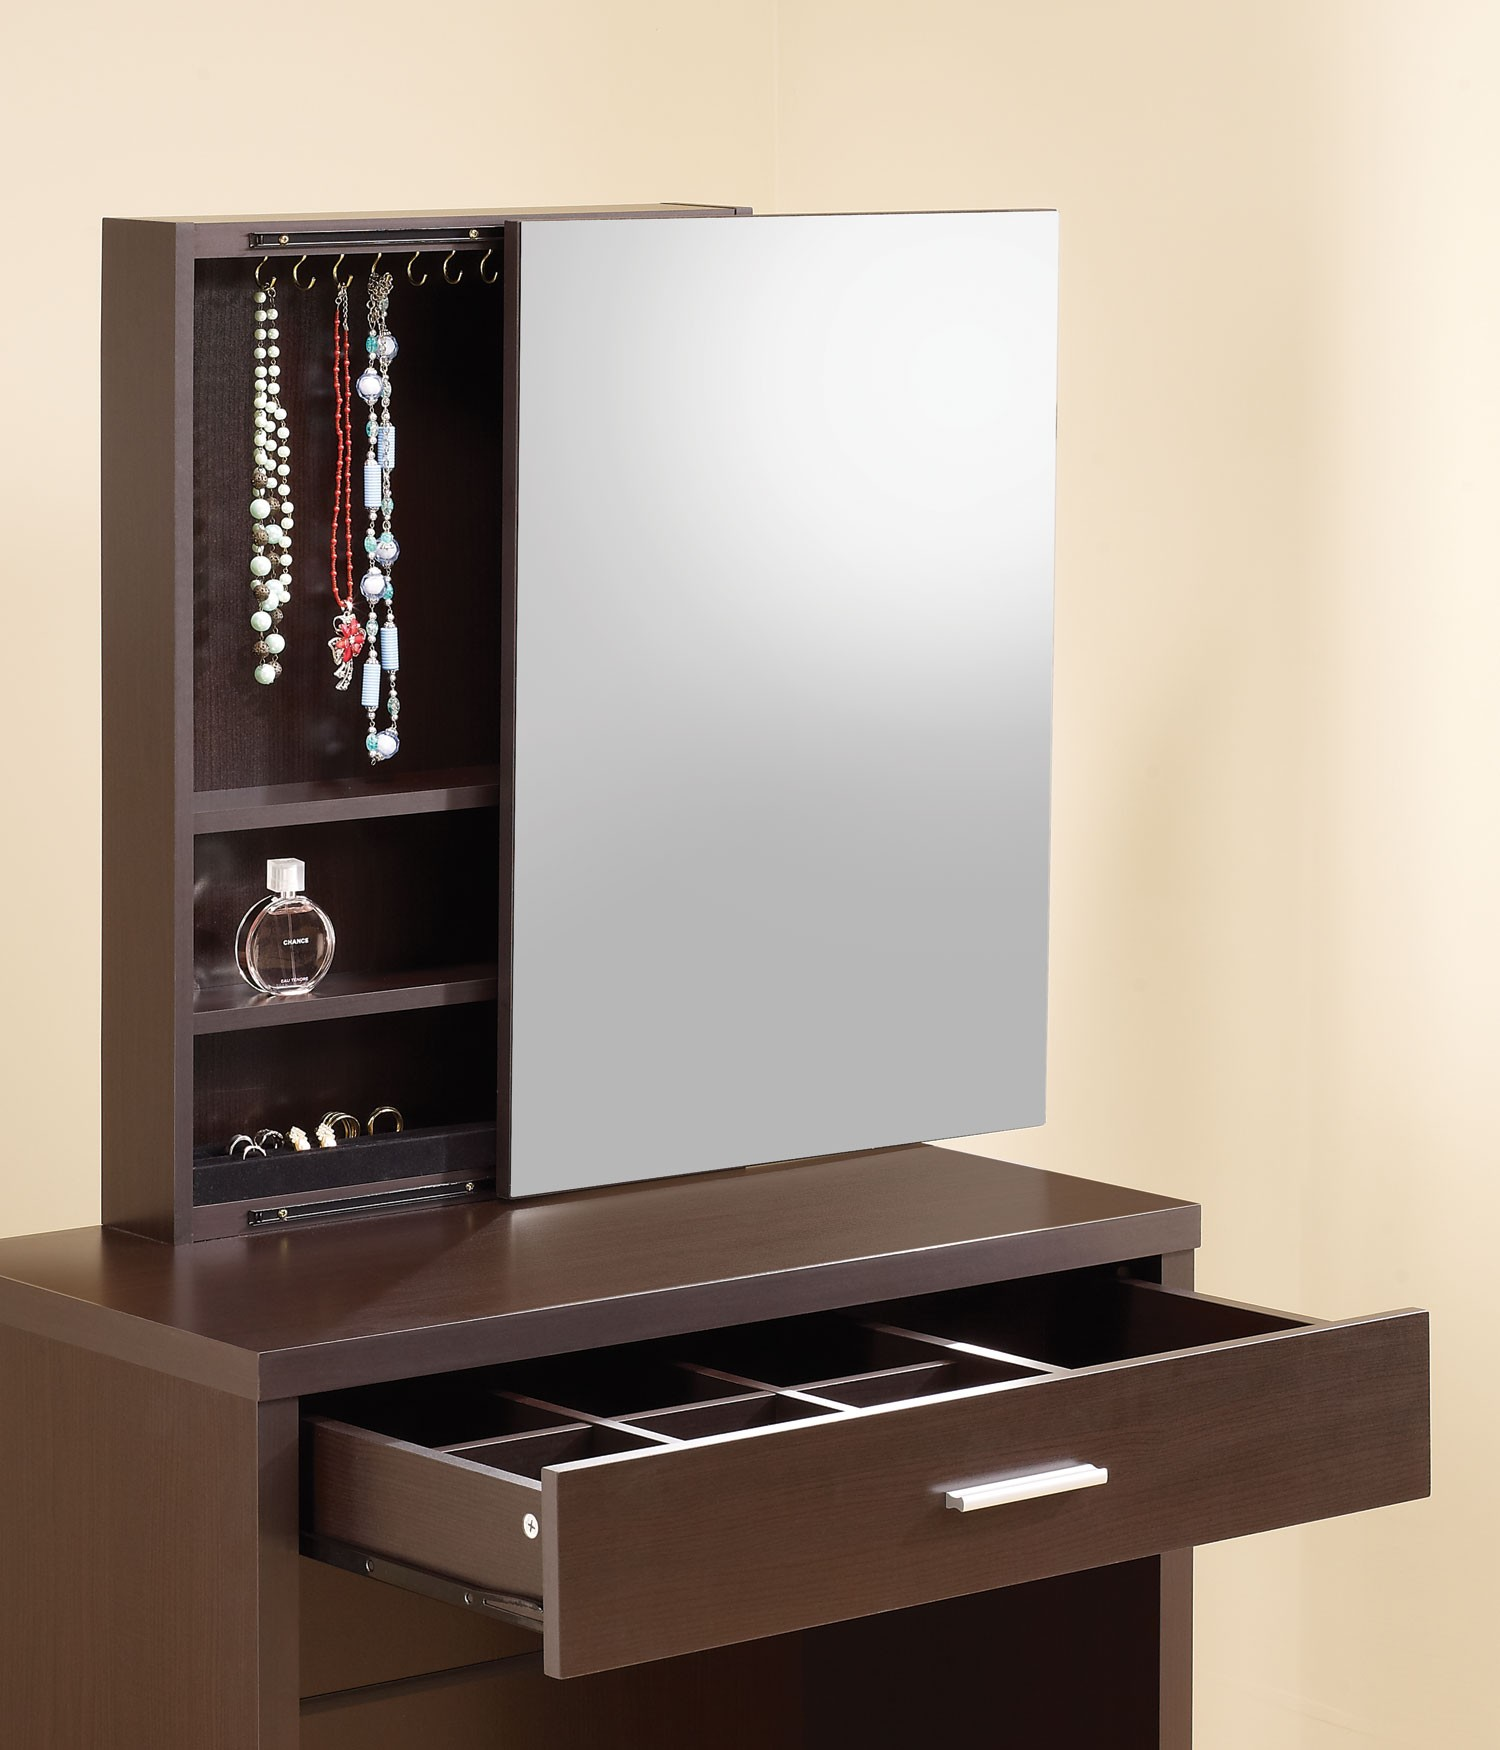 Cappuccino 2 Piece Vanity Set from Coaster